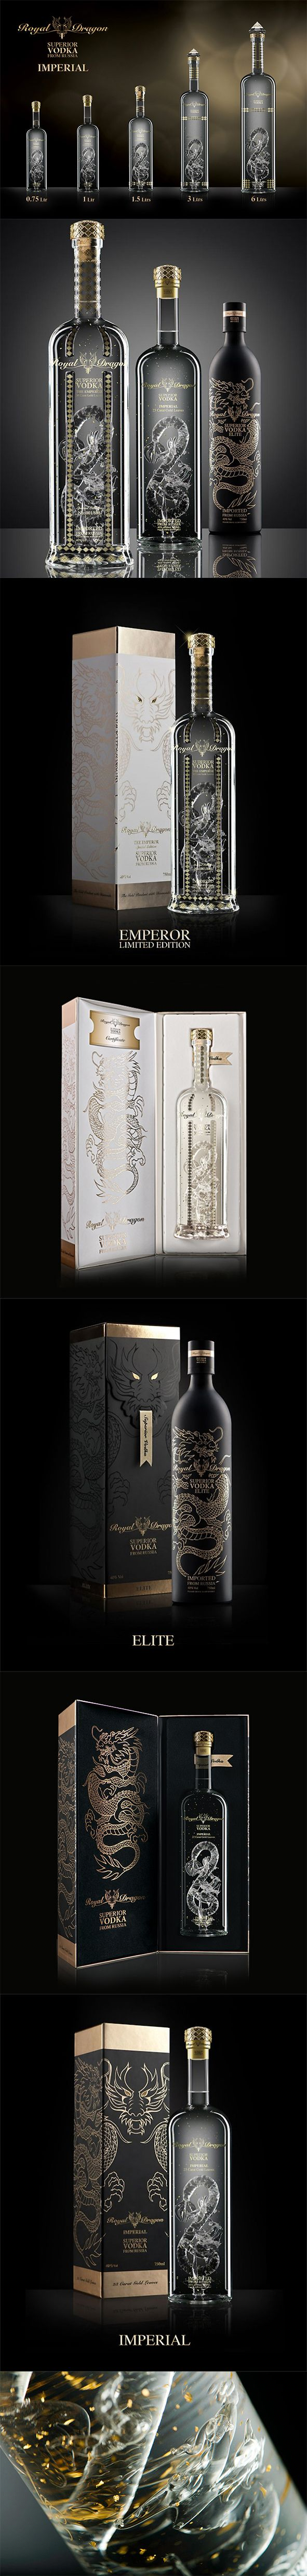 Royal Dragon Vodka Superior Vodka from Russia